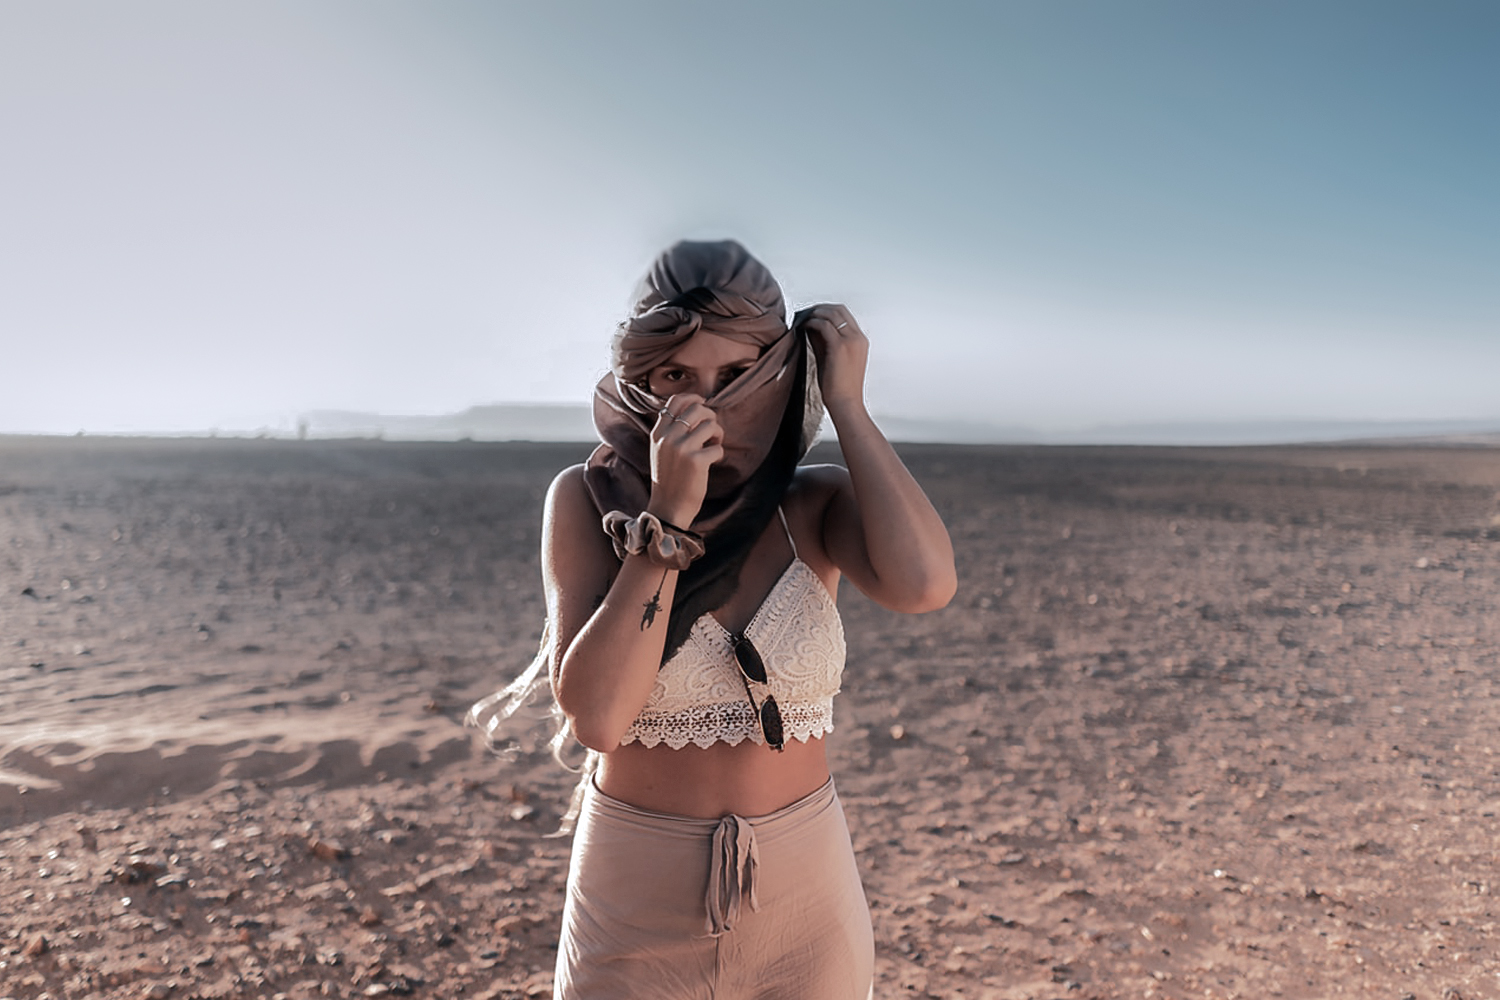 woman with covered face is standing in the dessert